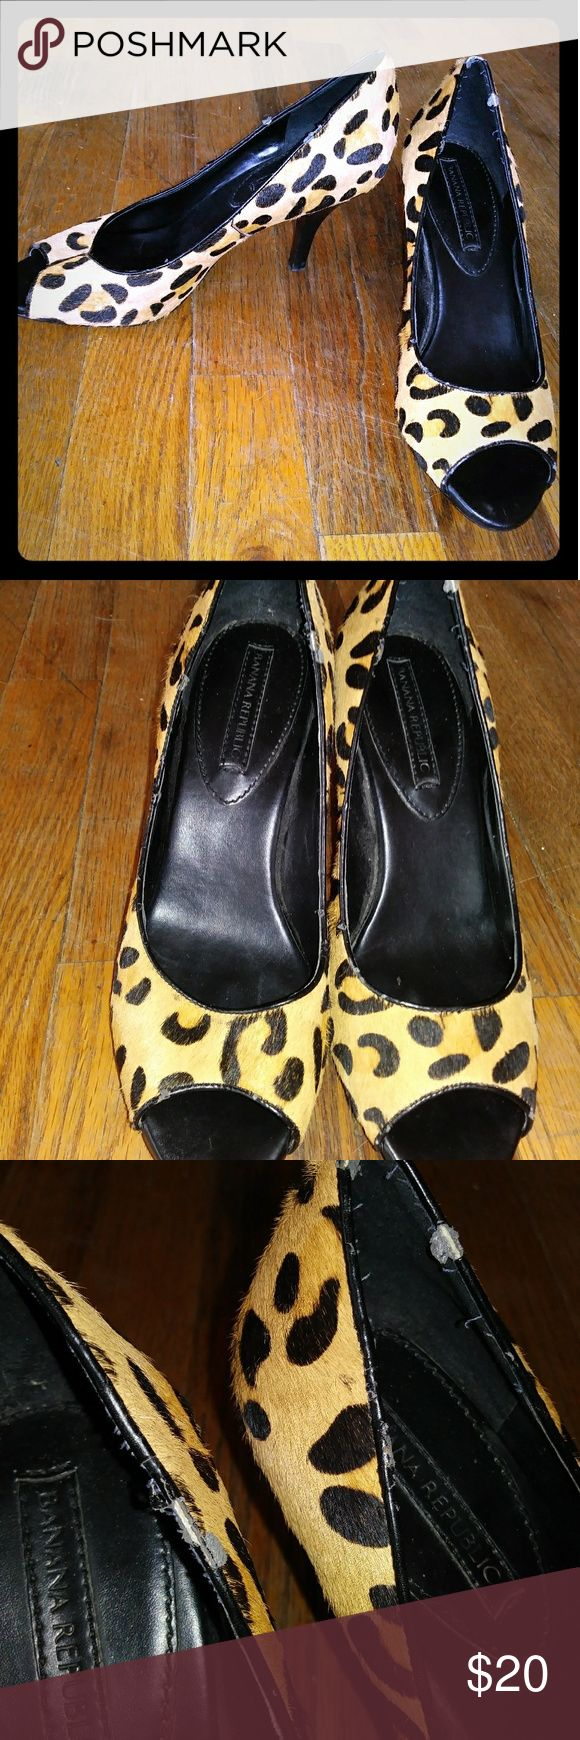 """Pony hair cheetah heels by Banana Republic Loved but beautiful with a lot of life left. Flaw is the leather wear around rims of back of need but can't see when wearing. About 3"""" heel. Extremely comfy! #cheetah #leopard #banana republic #gap #j.crew #j. Crew Banana Republic Shoes Heels"""